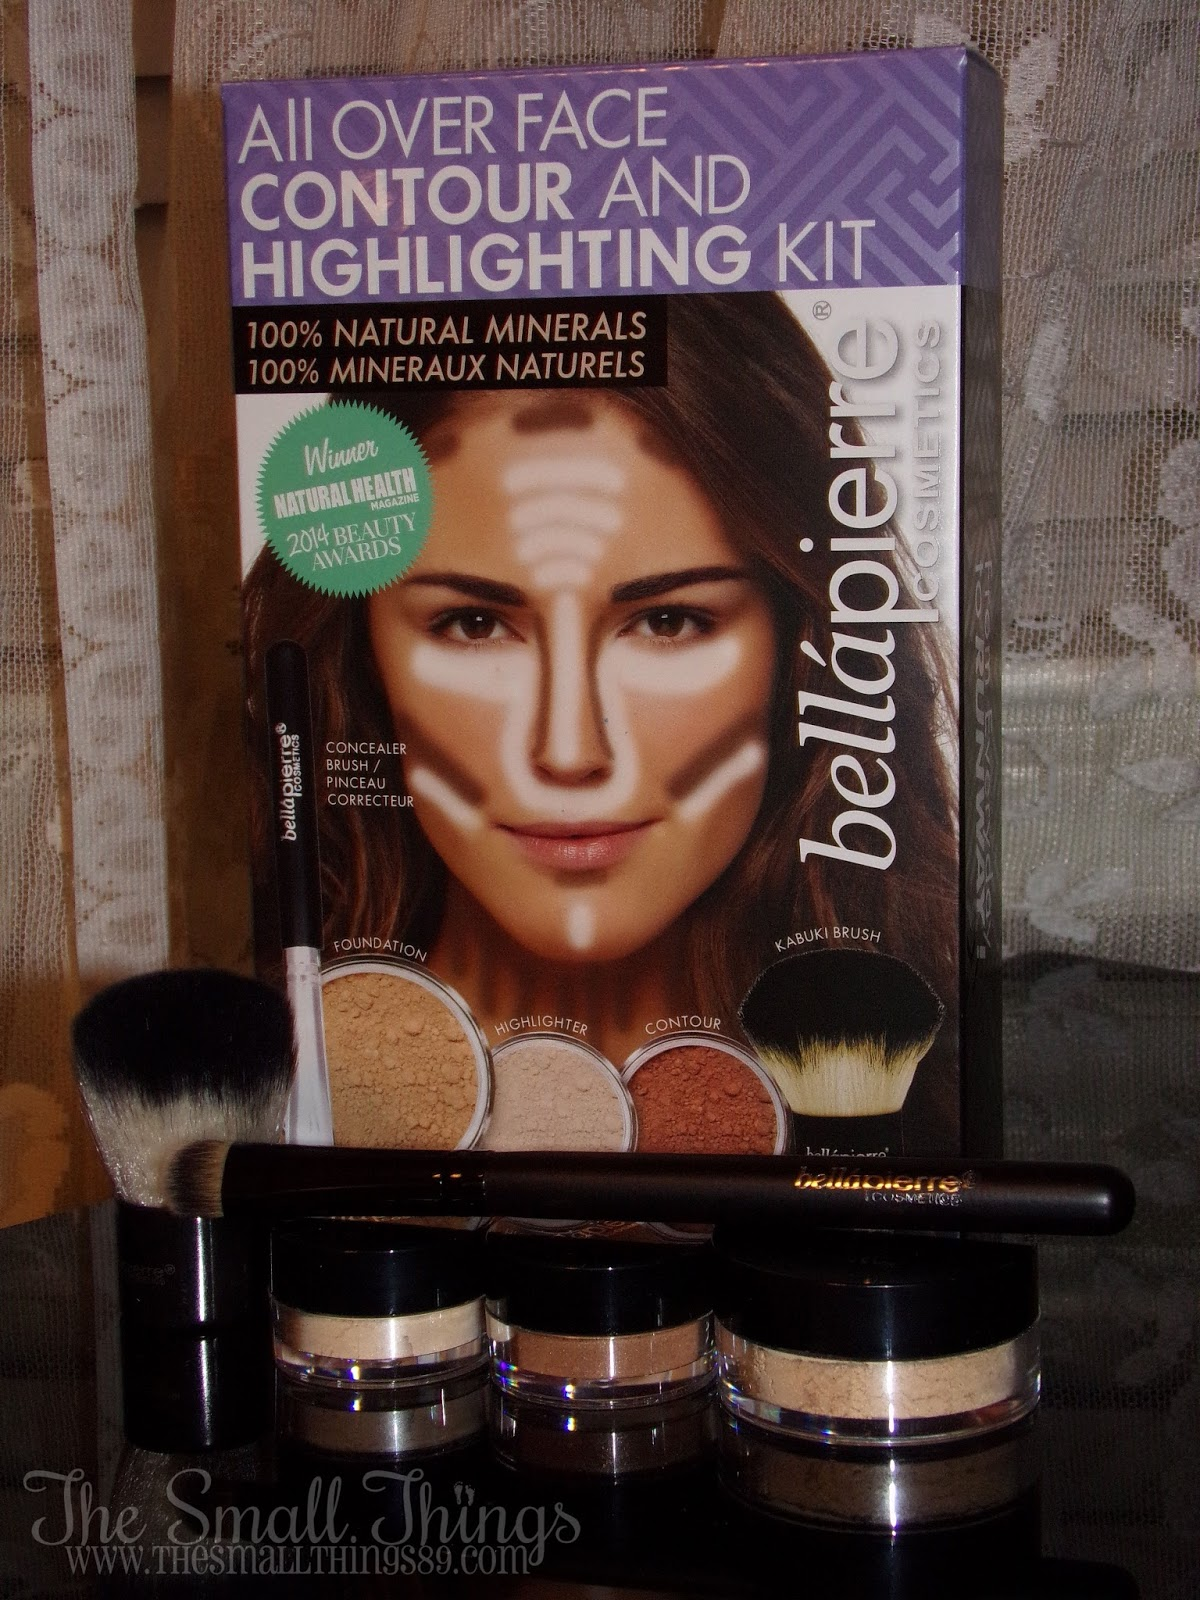 If You Haven't Heard Of Bellapierre Cosmetics, They Have All Natural Mineral  Makeup